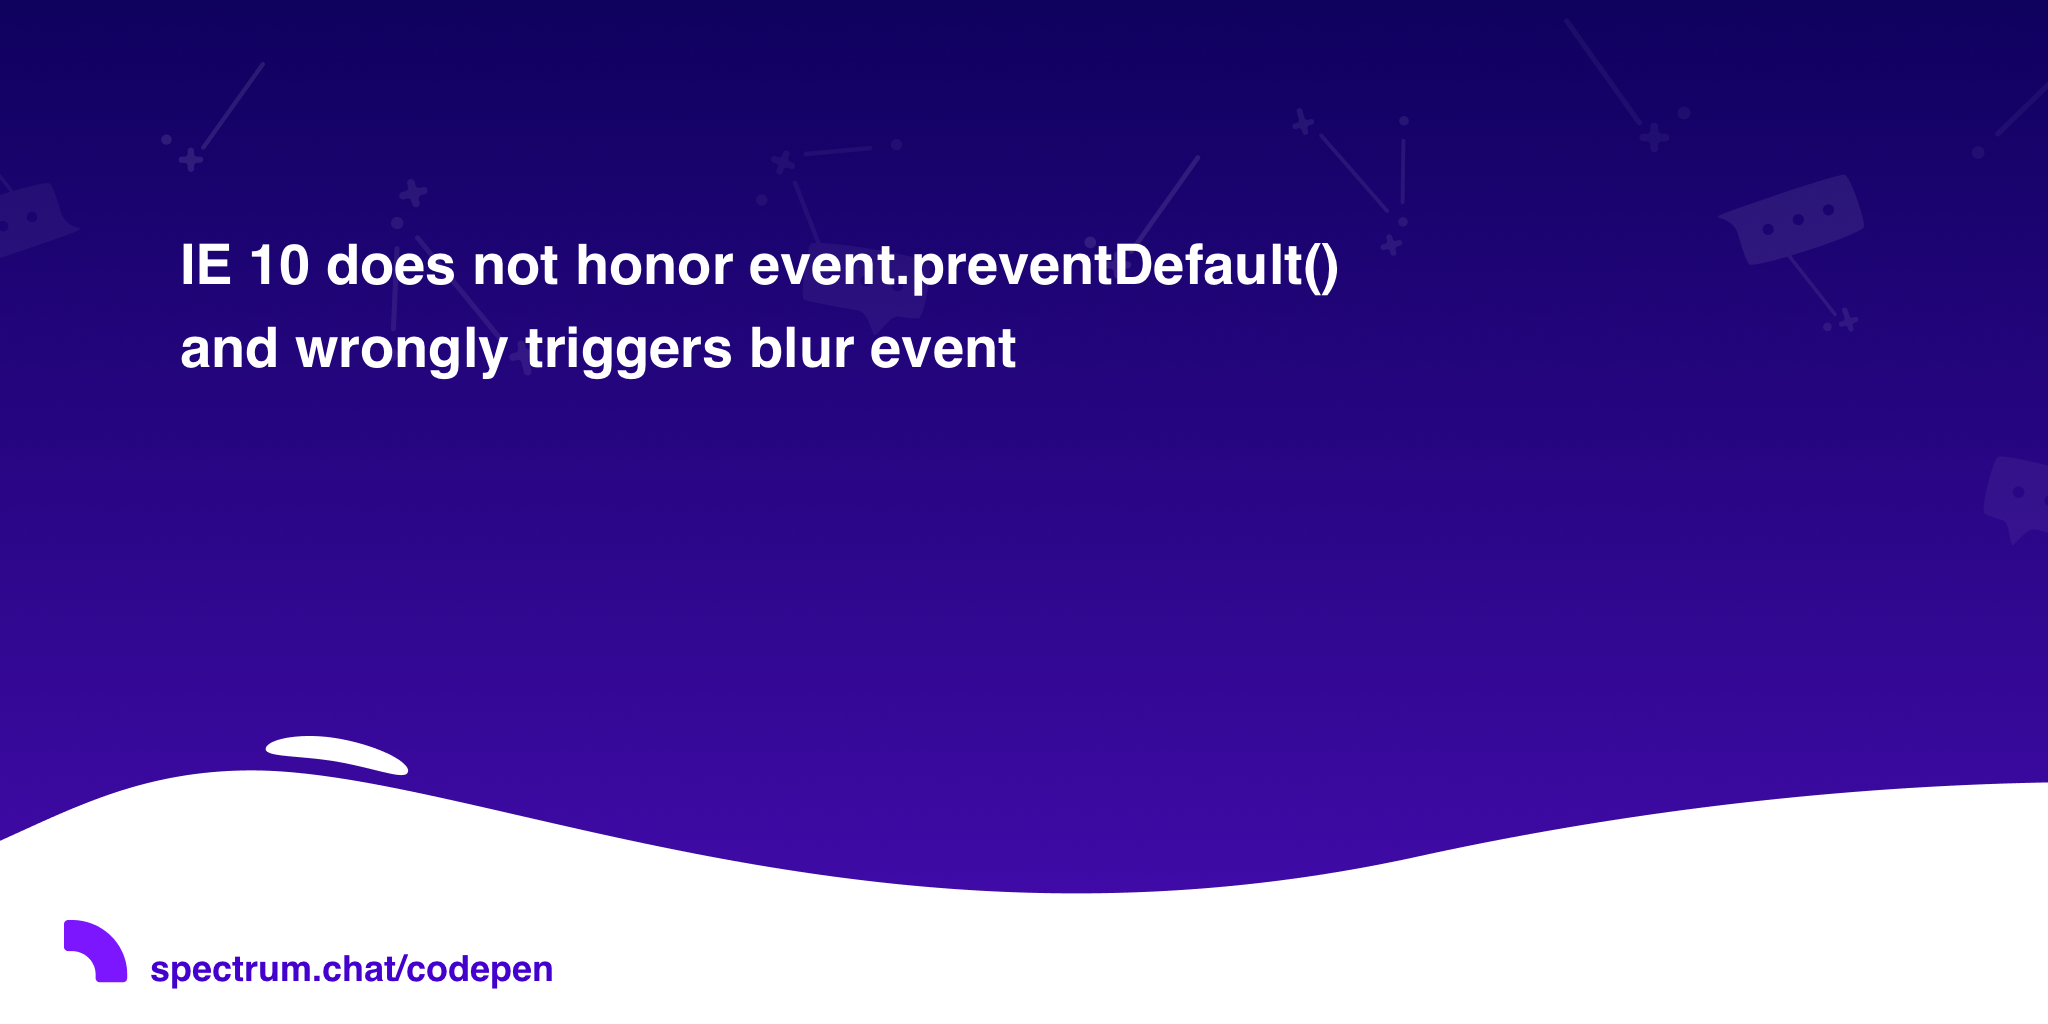 IE 10 does not honor event preventDefault() and wrongly triggers